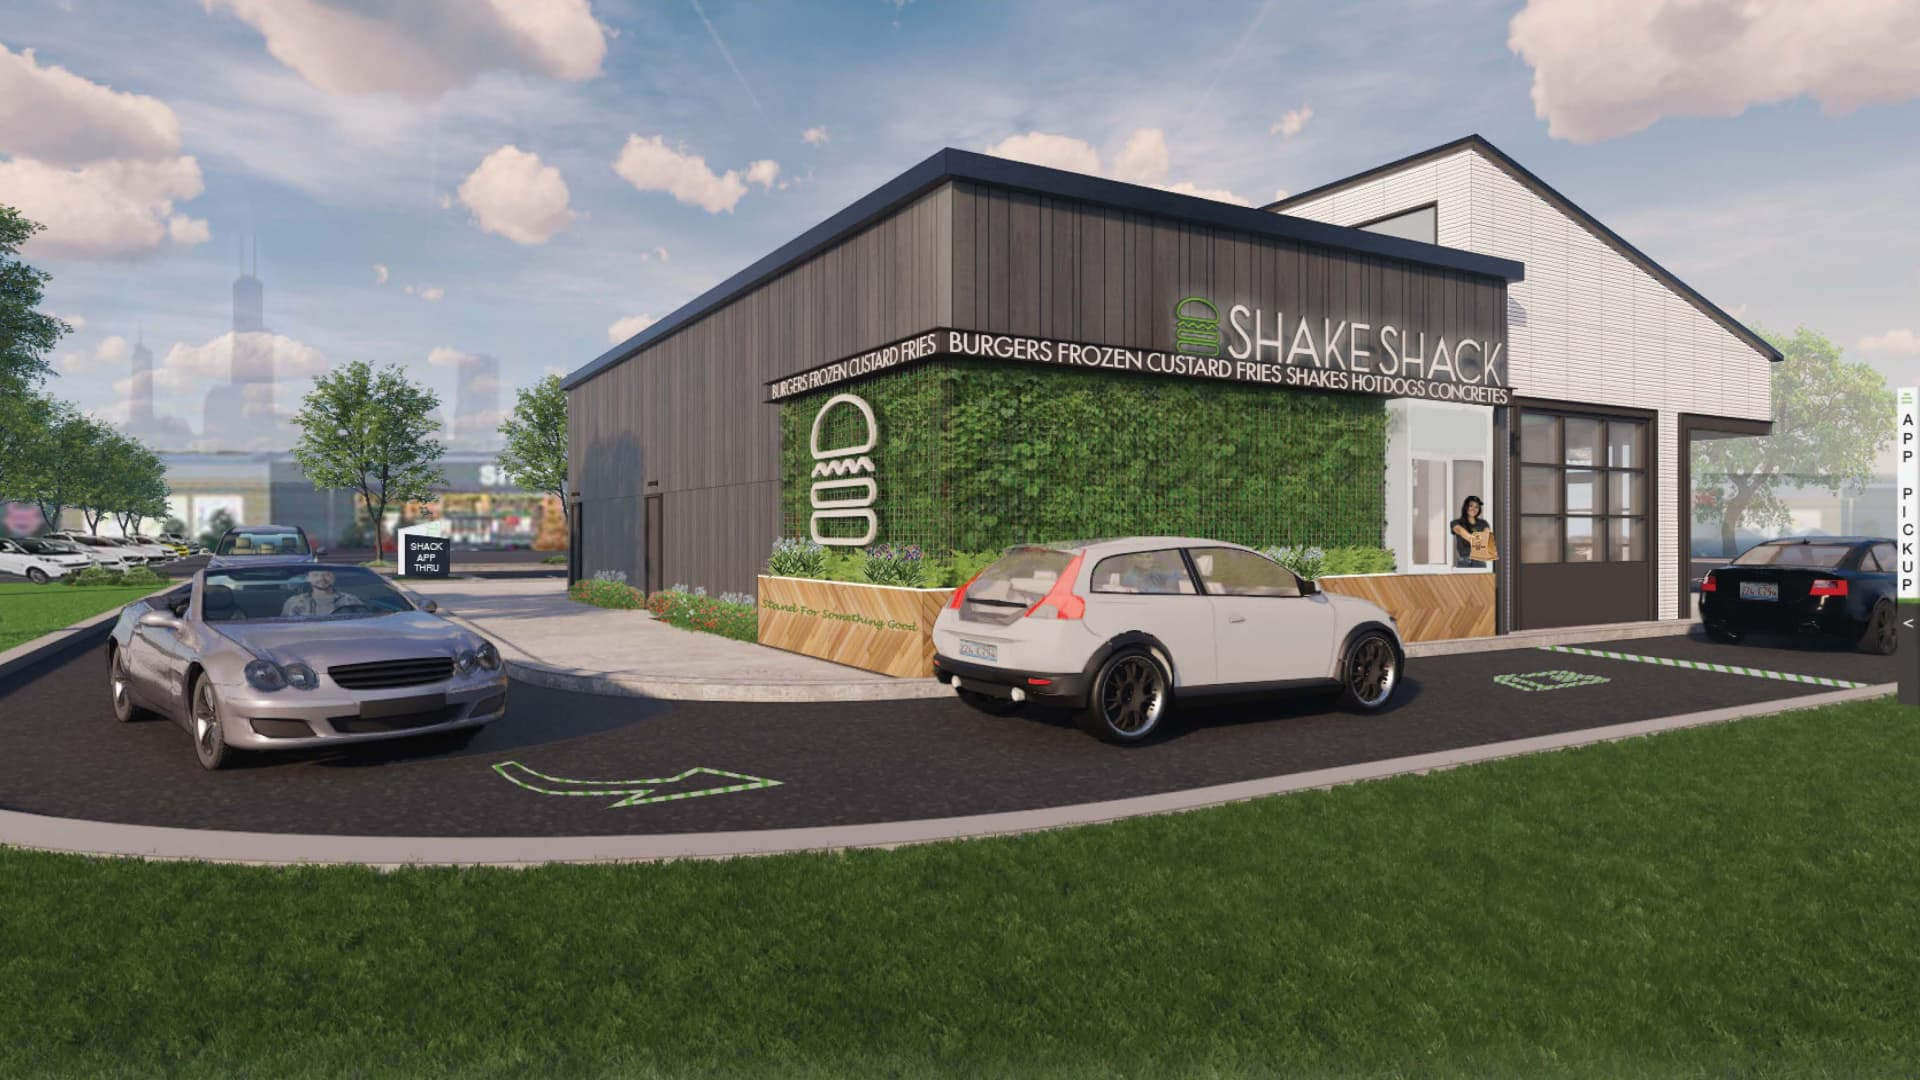 A rendering of Shake Shack's drive-up window